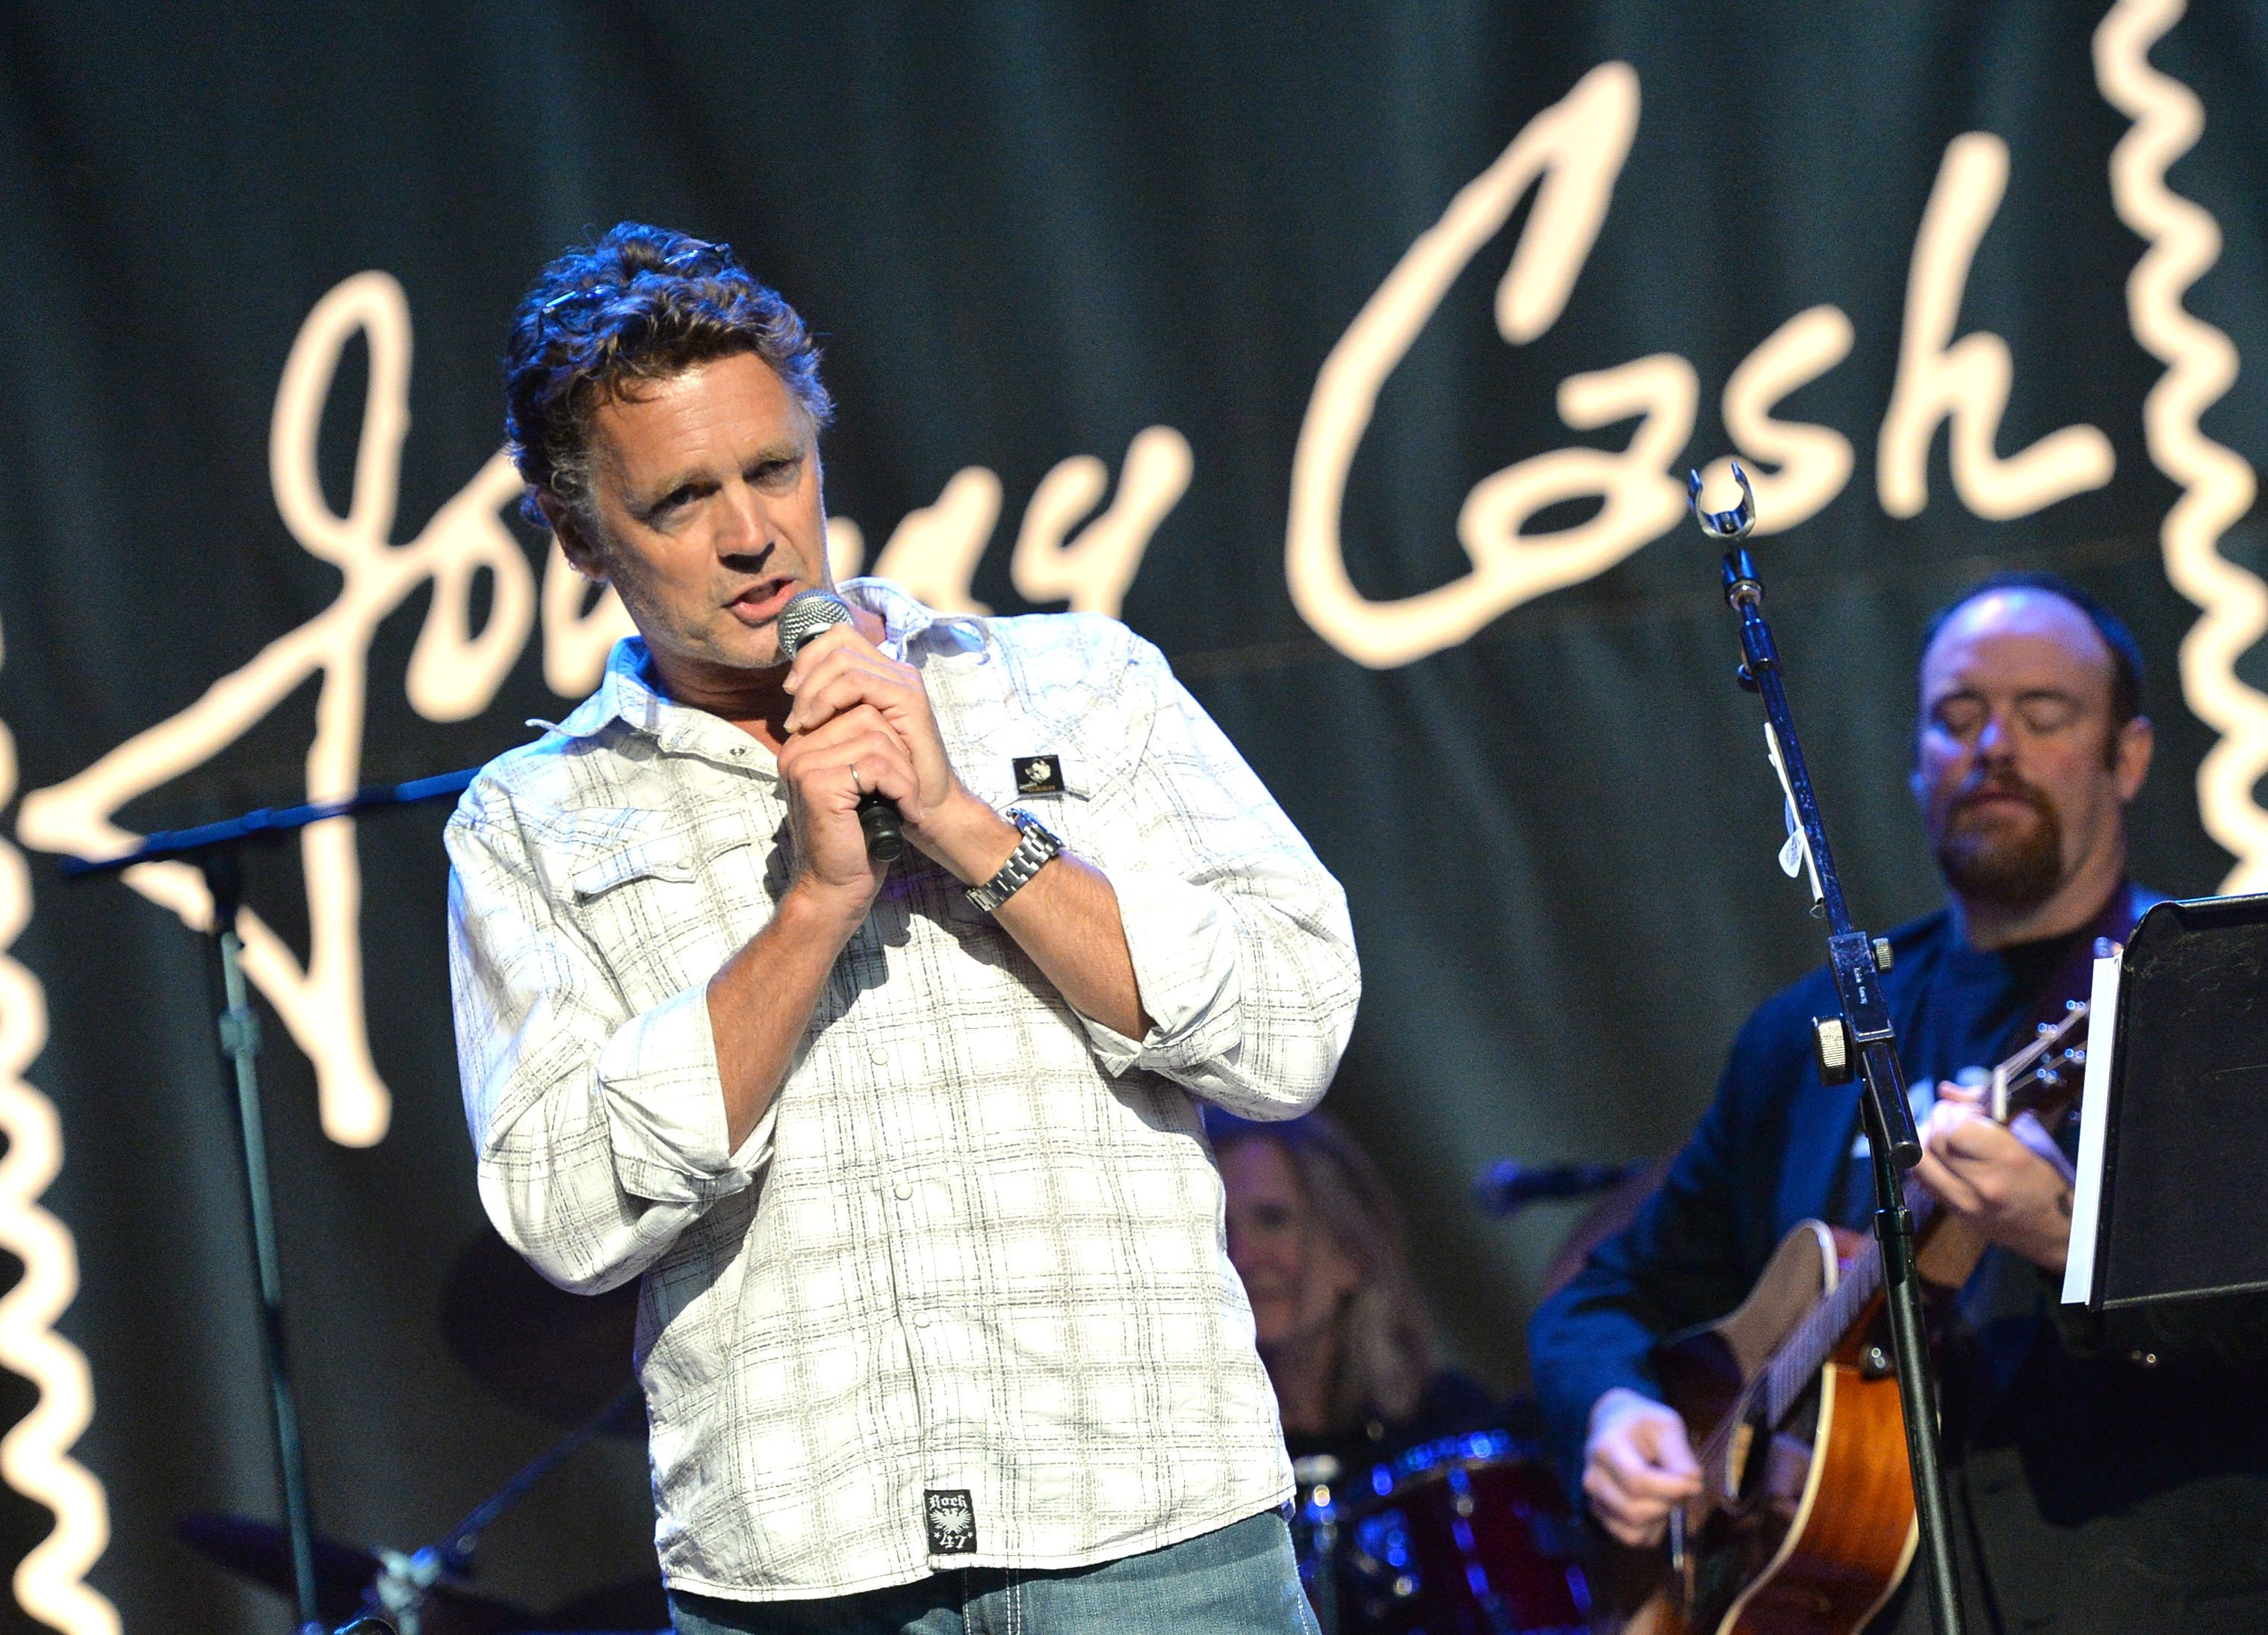 John Schneider and John Carter Cash perform at the Johnny Cash Limited-Edition Forever Stamp launch at Ryman Auditorium on June 5, 2013  | Photo: GettyImages